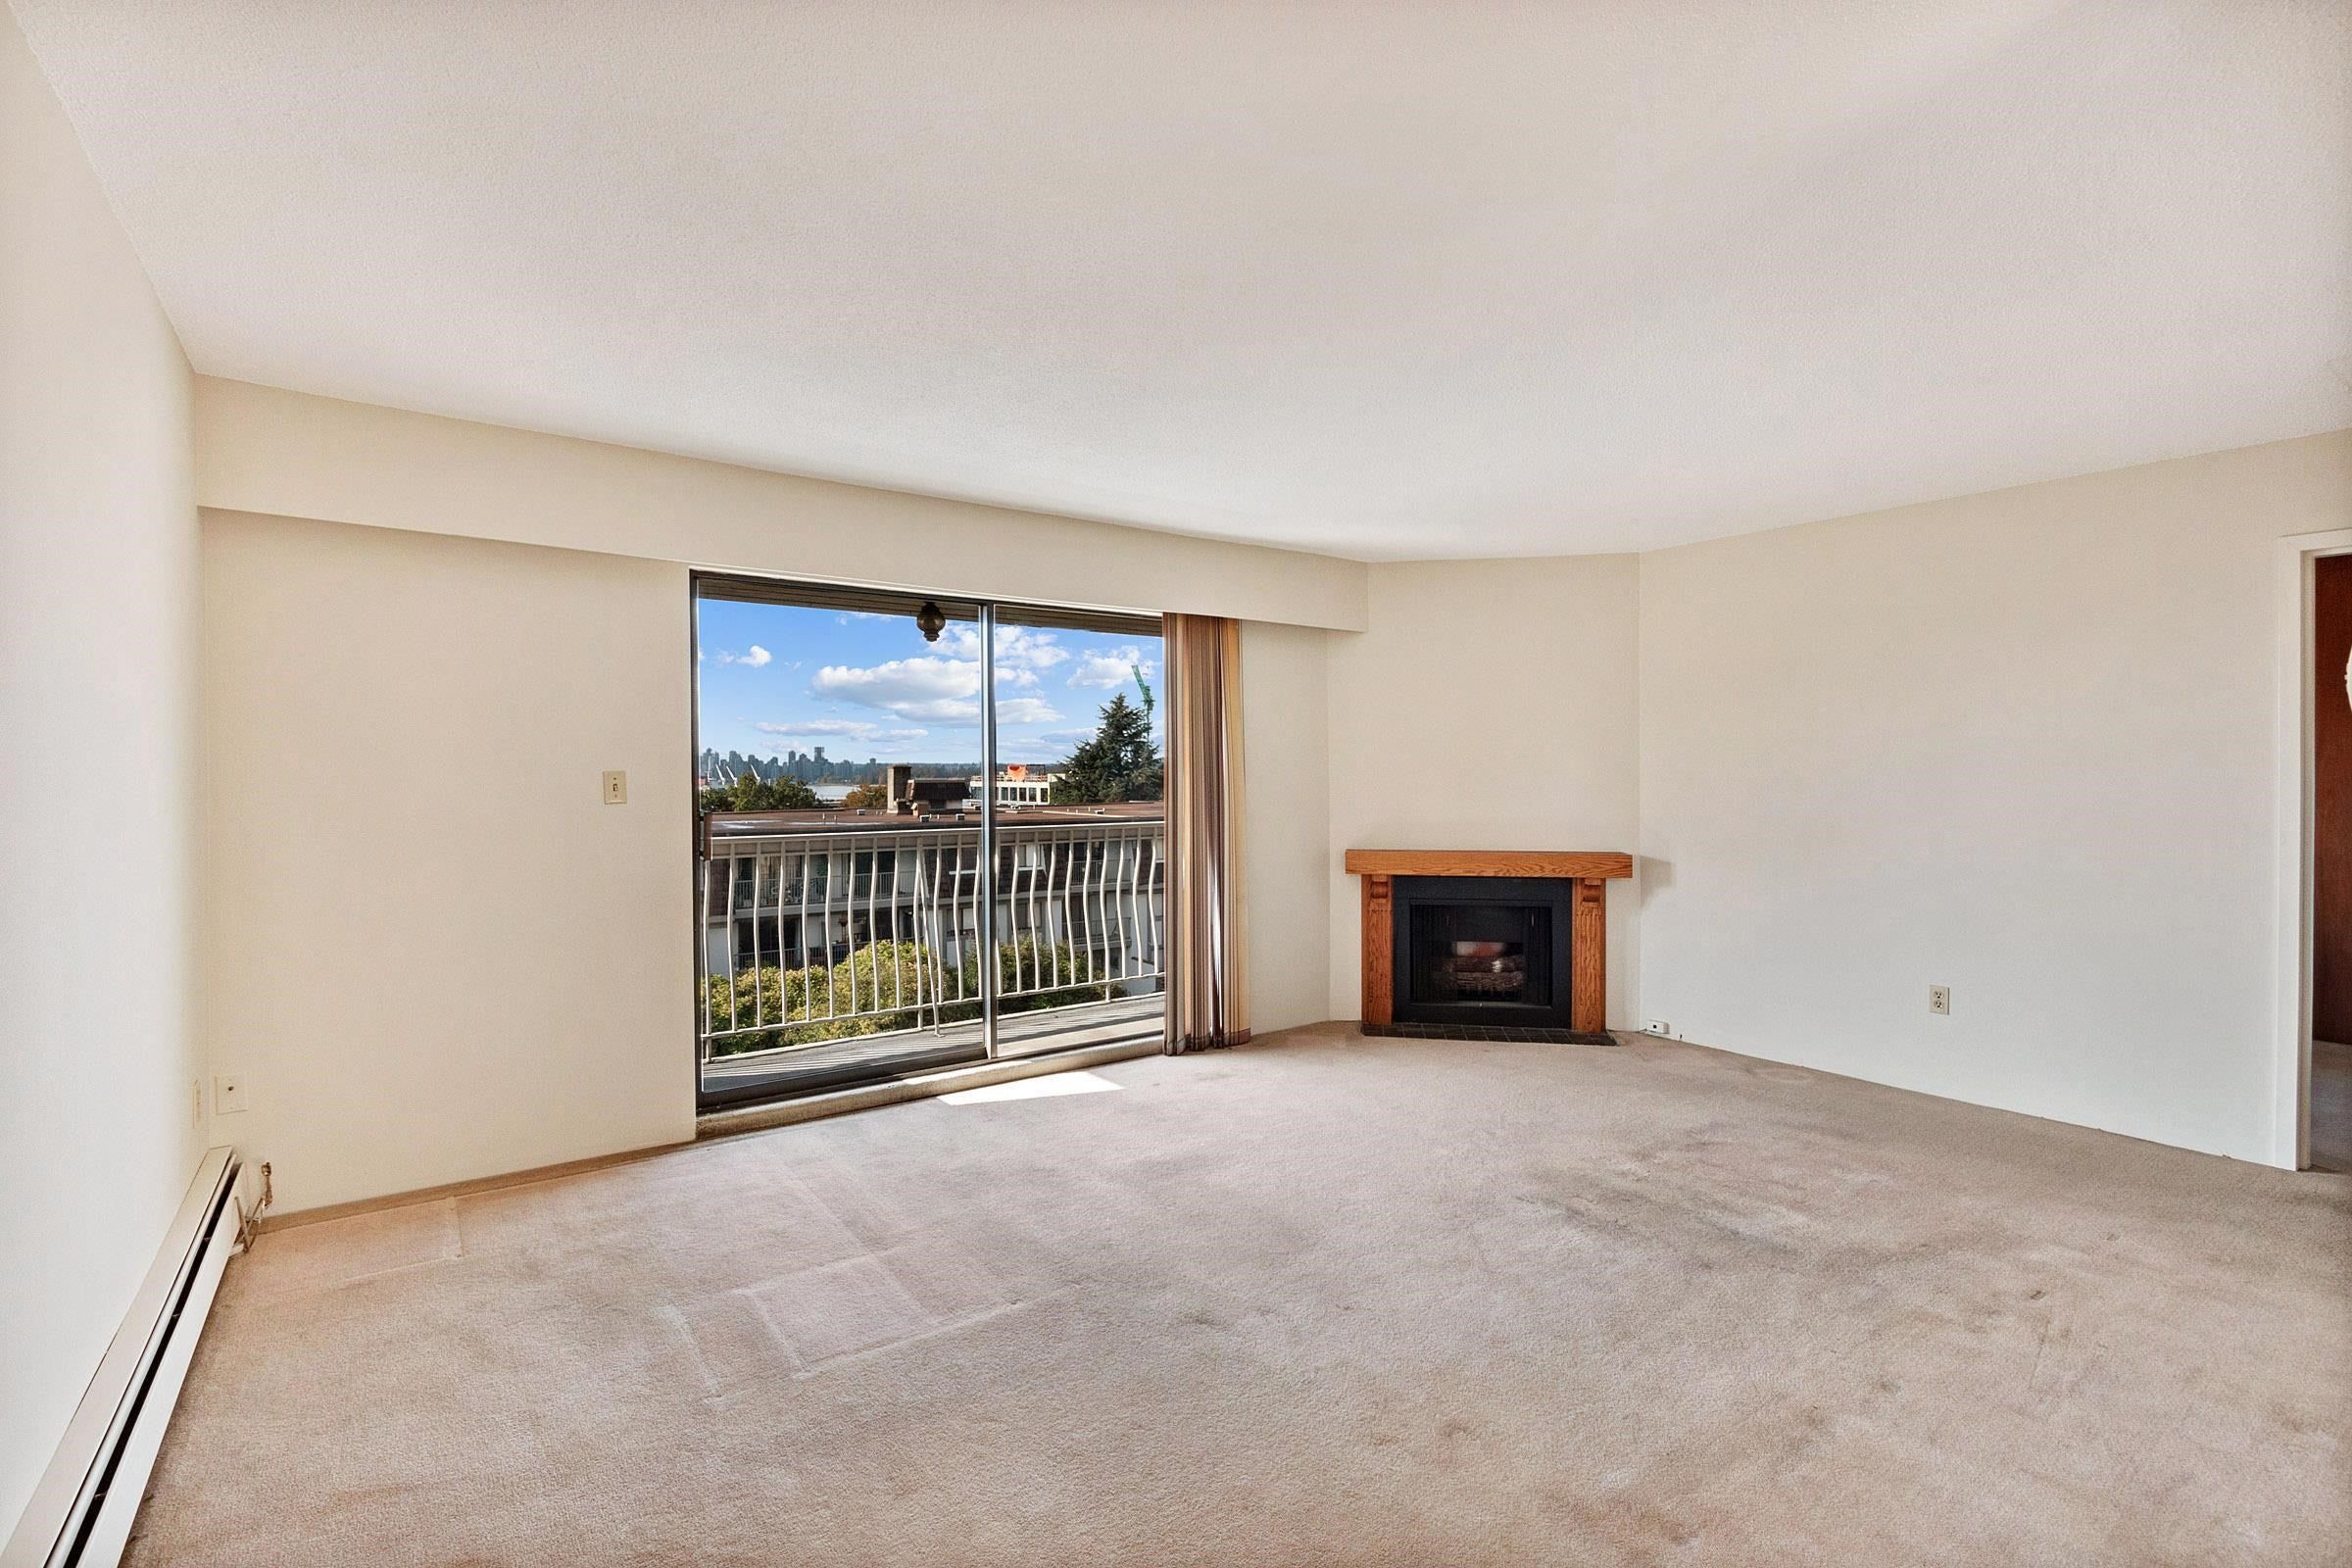 301 264 W 2ND STREET - Lower Lonsdale Apartment/Condo for sale, 2 Bedrooms (R2625527) - #3